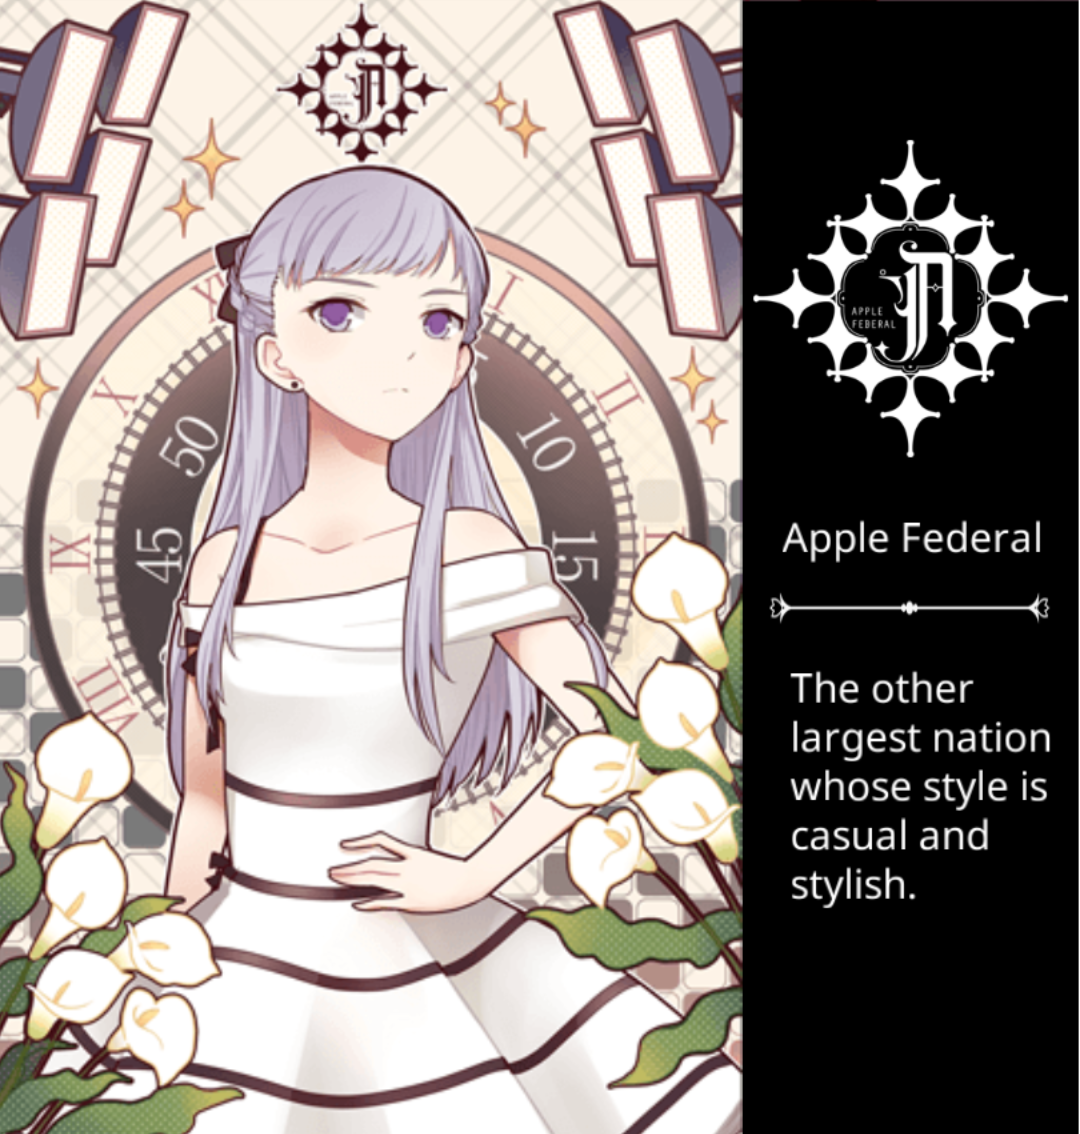 Apple Federal casual style